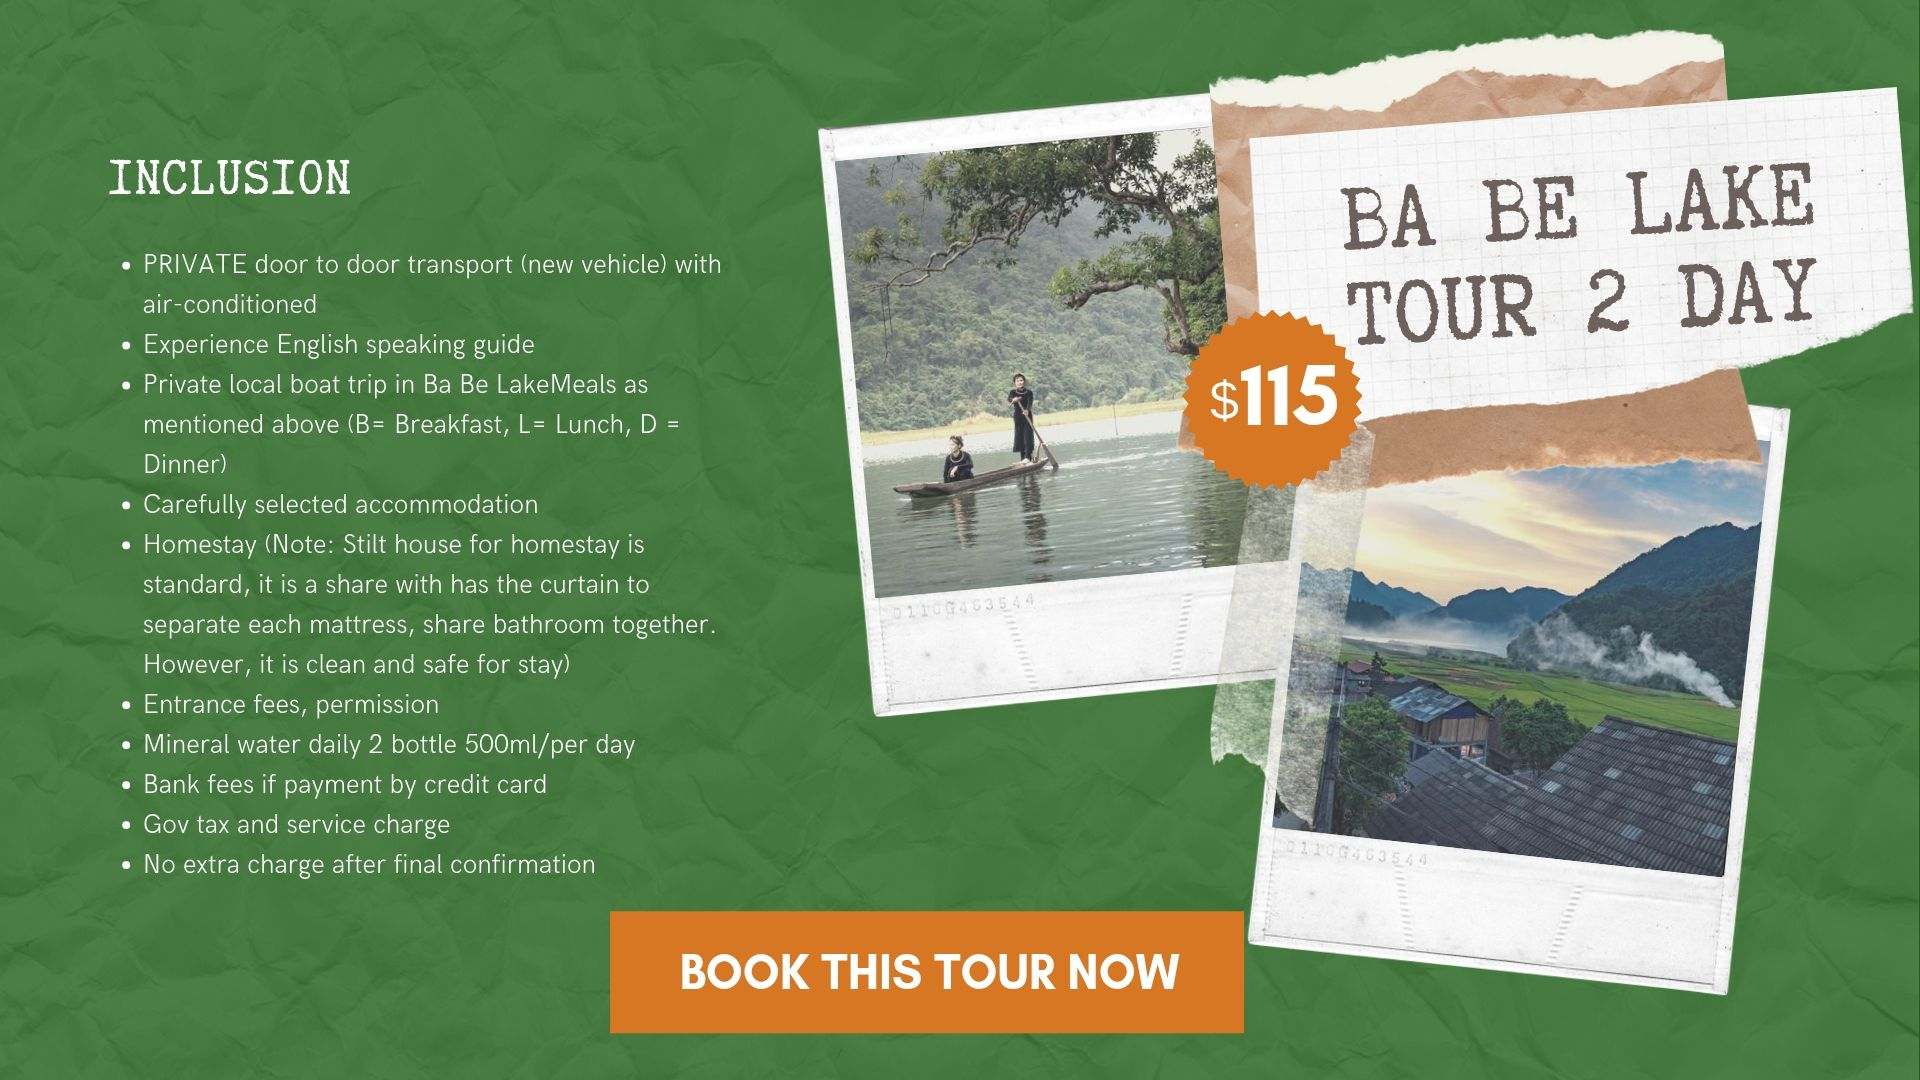 Ba Be Lake tour 2 day from Hanoi